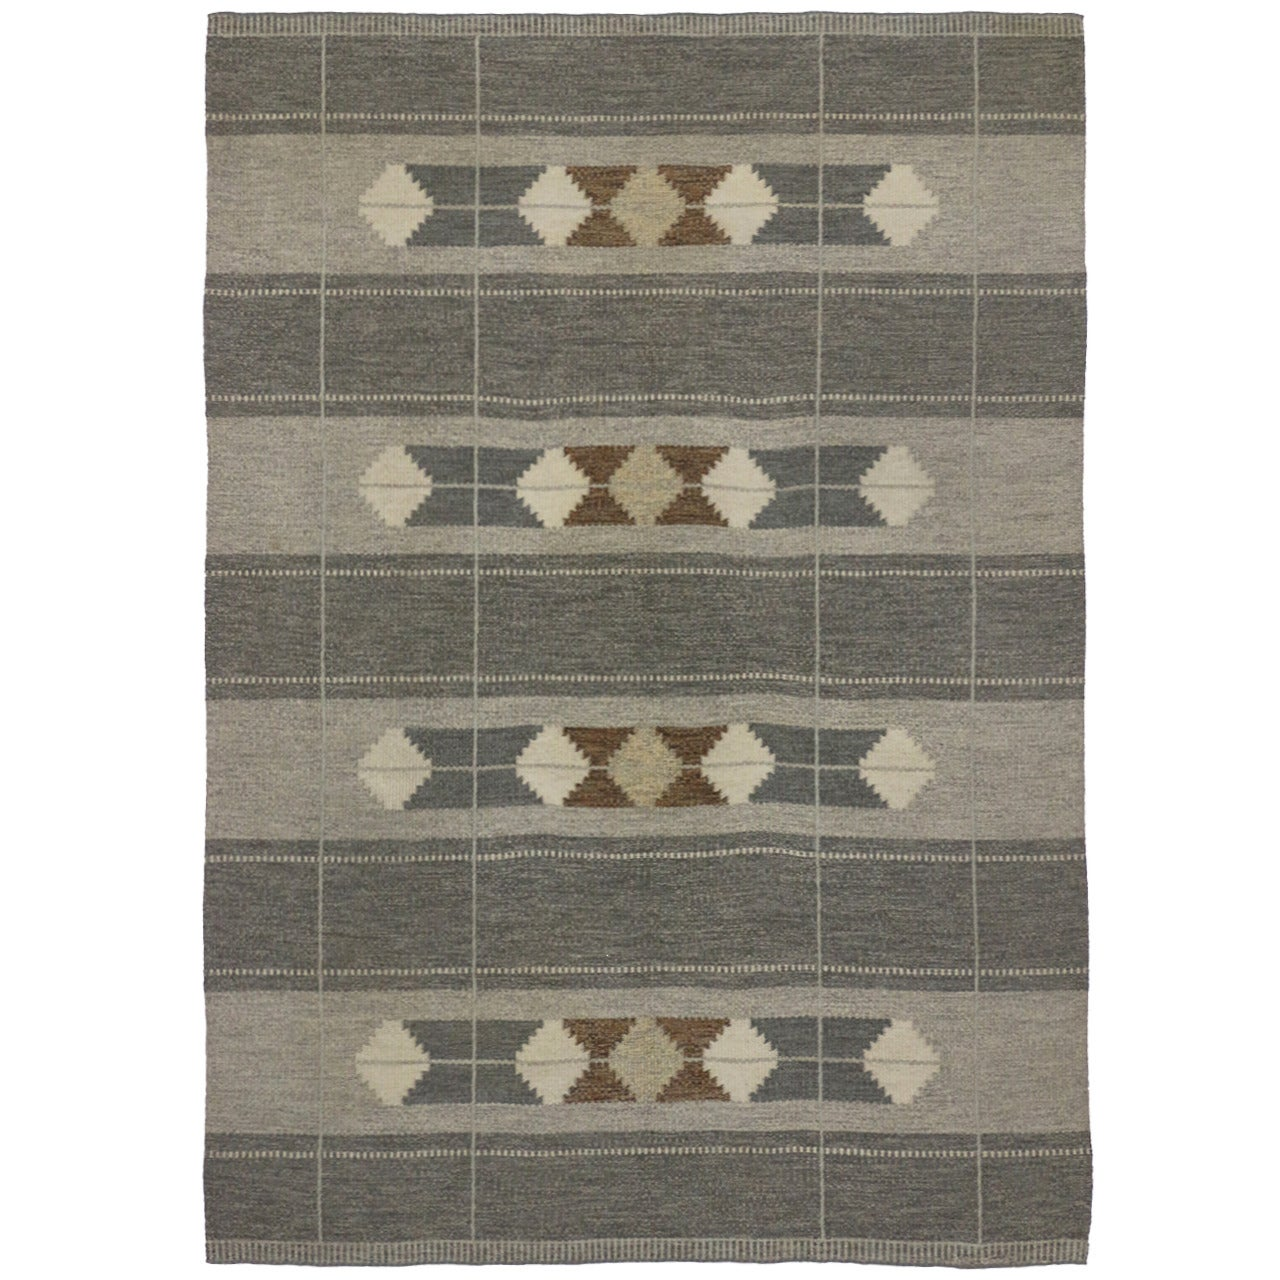 Vintage Swedish Rollakan Gray Kilim Rug with Scandinavian Modern Style